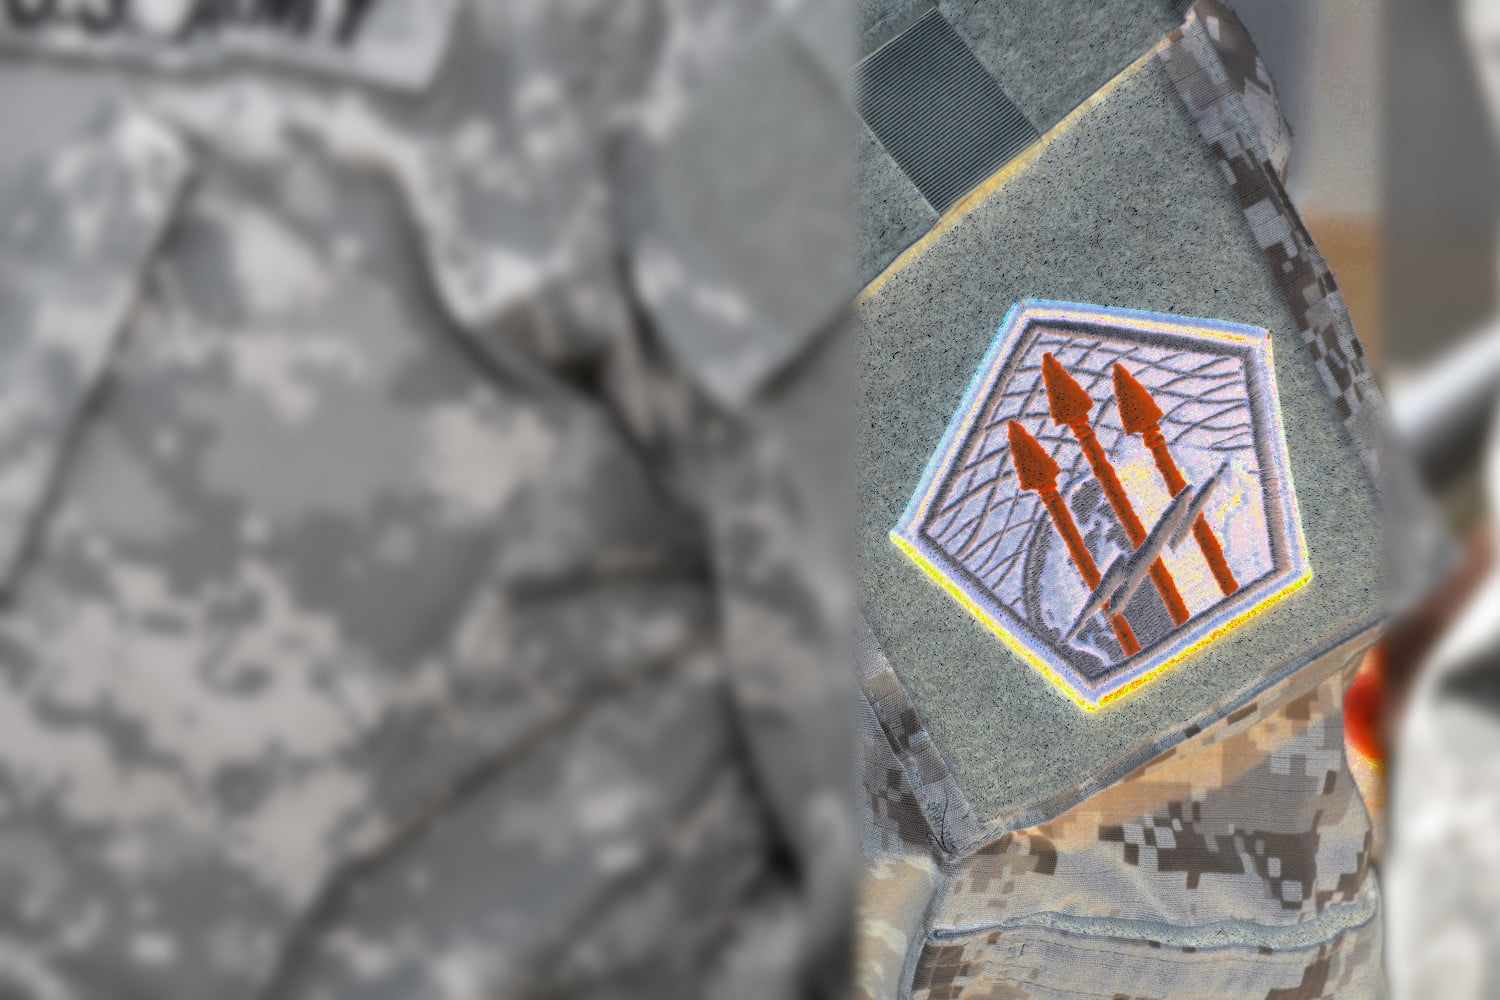 U.S. Military Cyber Command was officially implemented in 2010, but intentions to do so were raised in 2006.